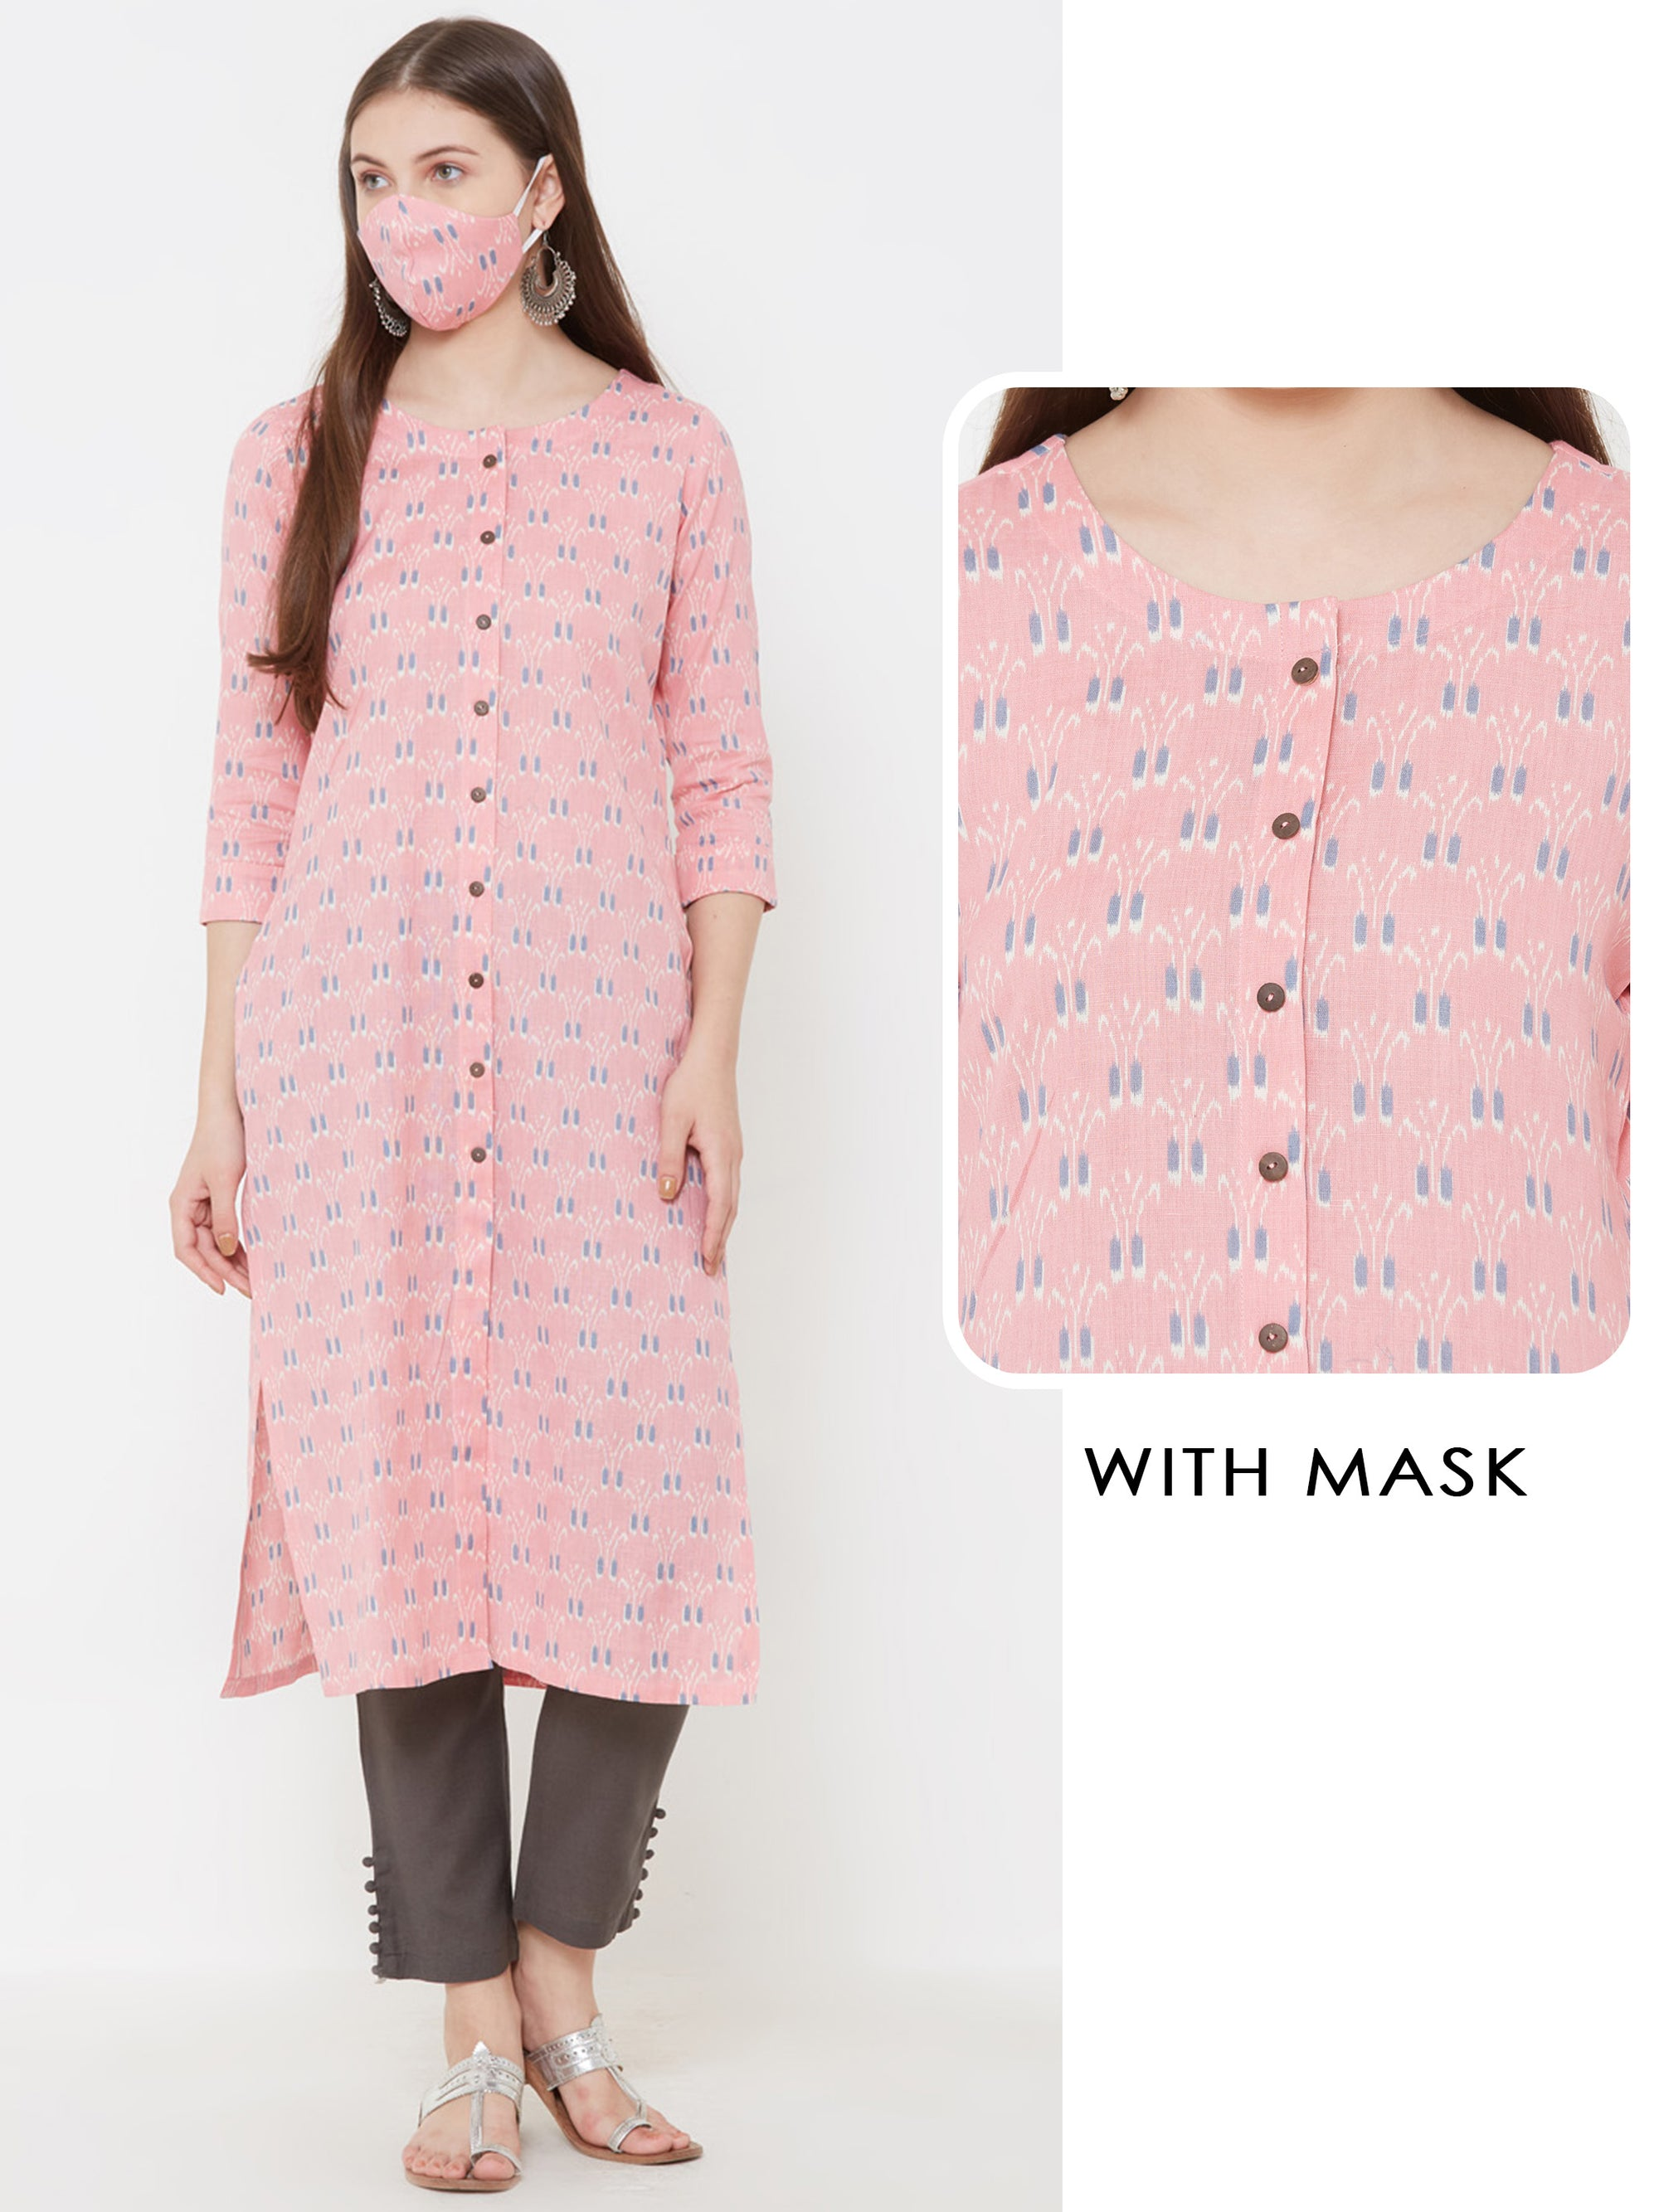 Abstract Lady Bug Printed Kurta with Matching Mask – Pink